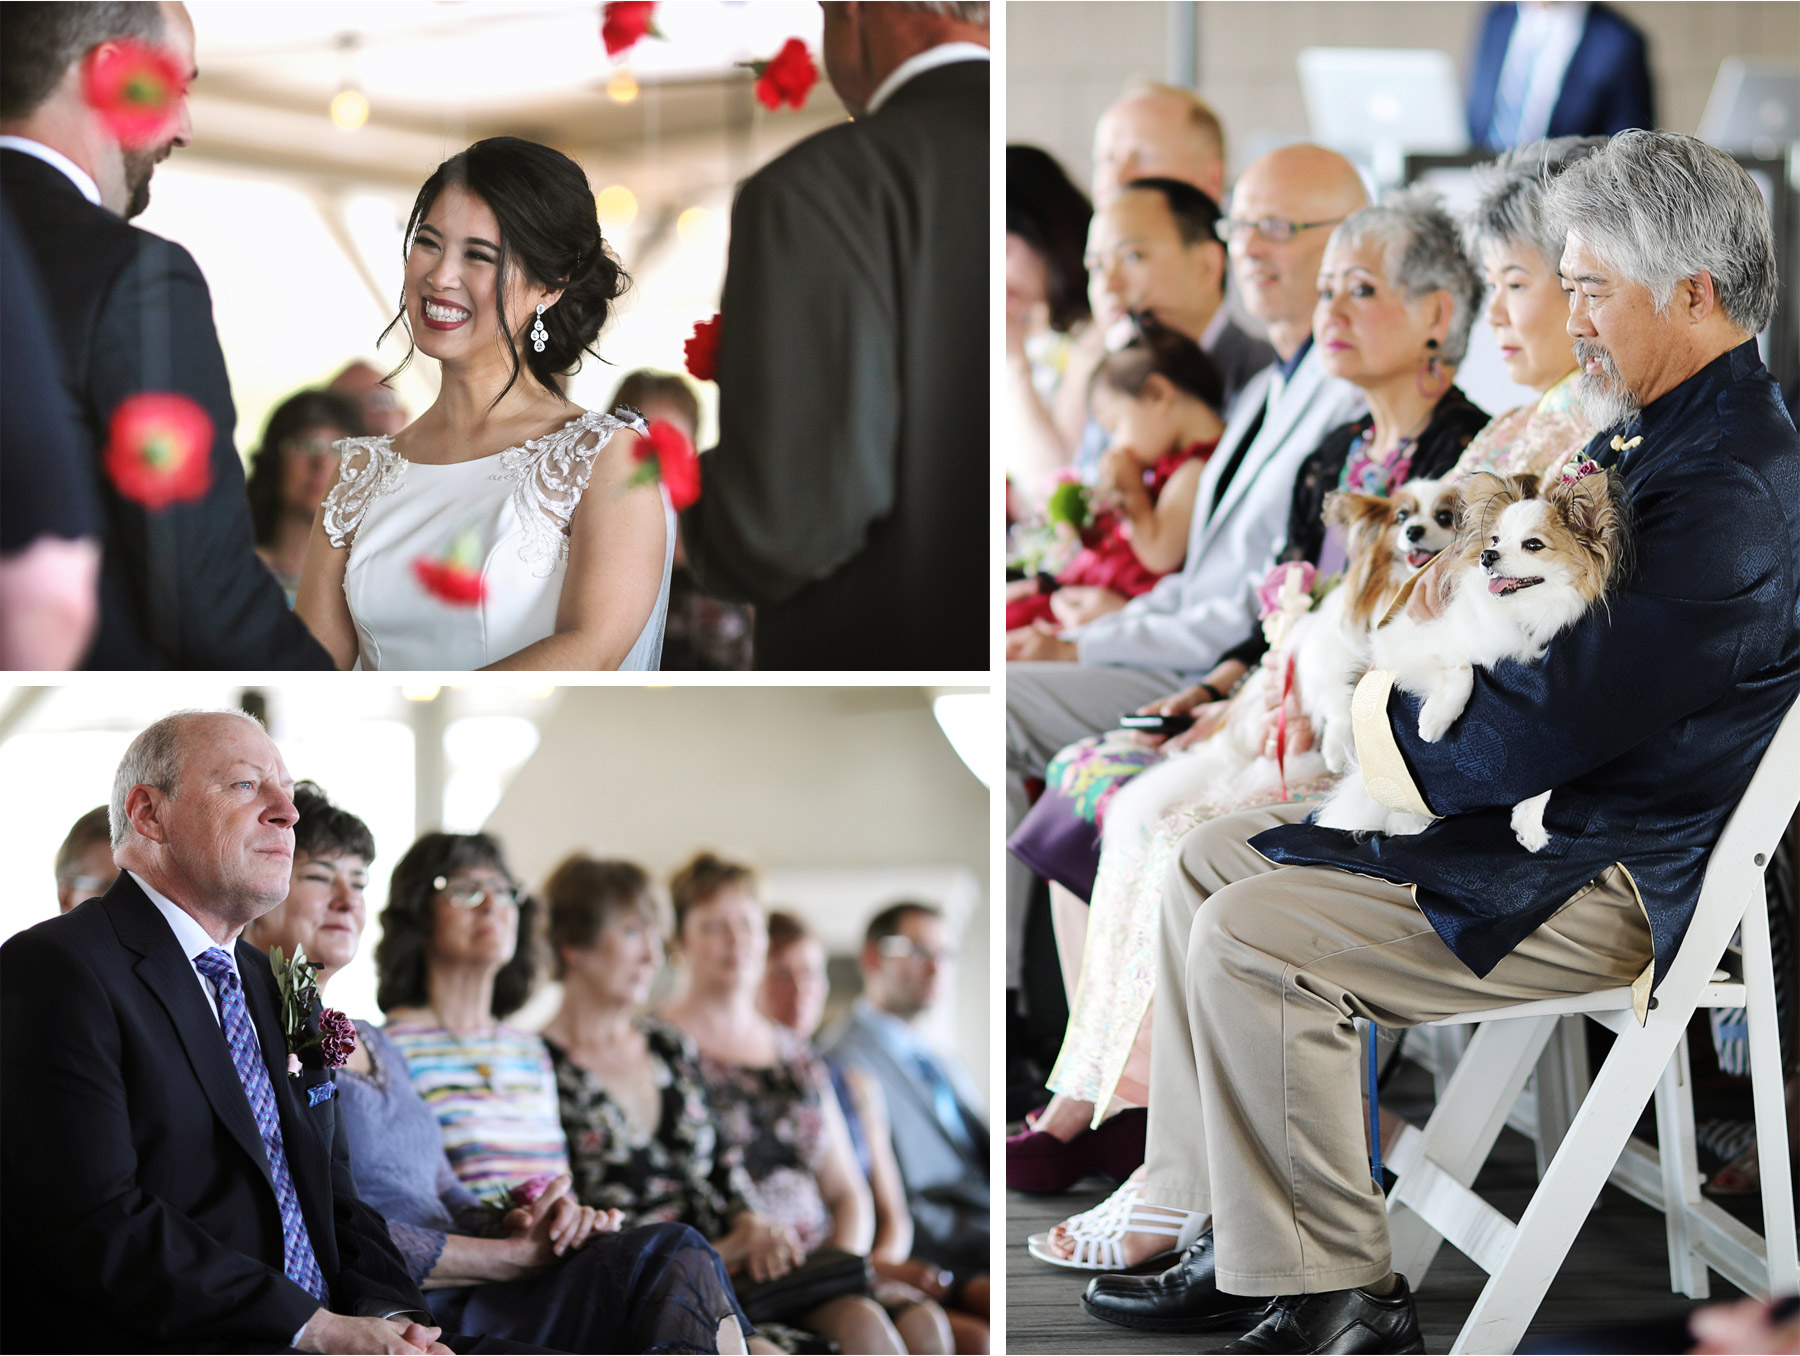 15-South-Carolina-Wedding-by-Vick-Photography-Hilton-Head-Island-Omni-Oceanfront-Hotel-Destination-Ceremony-Bride-Parents-Dogs-Tropical-Felyn-and-Will.jpg